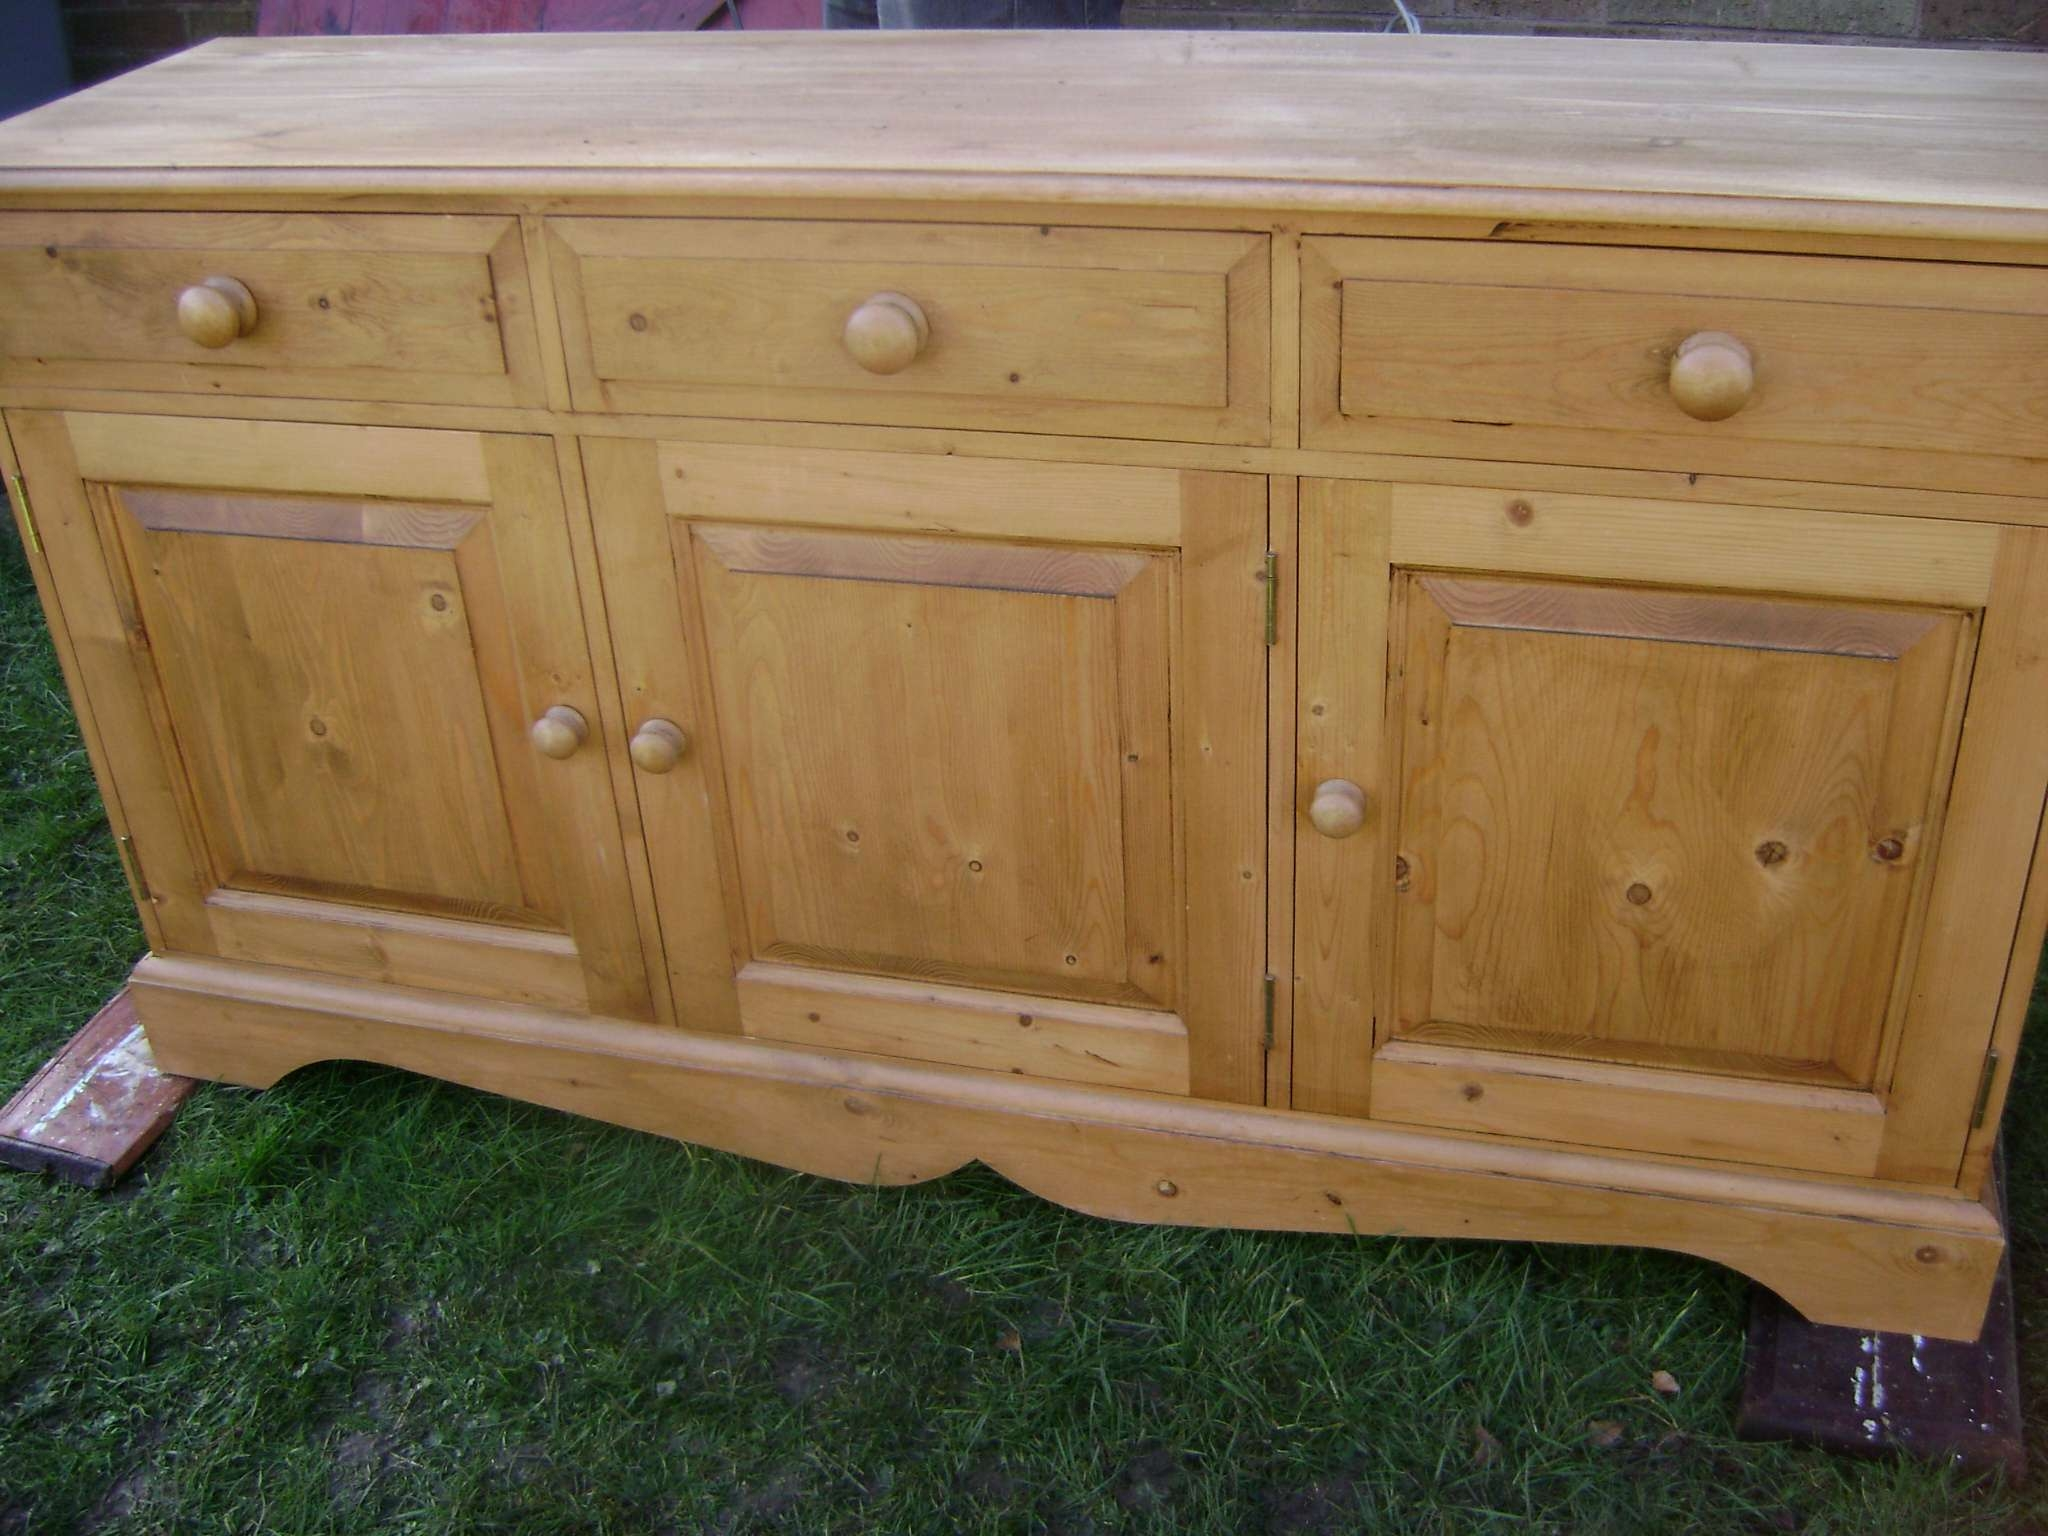 Painted Dresser | The Barrister's Horse Regarding Pine Sideboards (View 20 of 20)